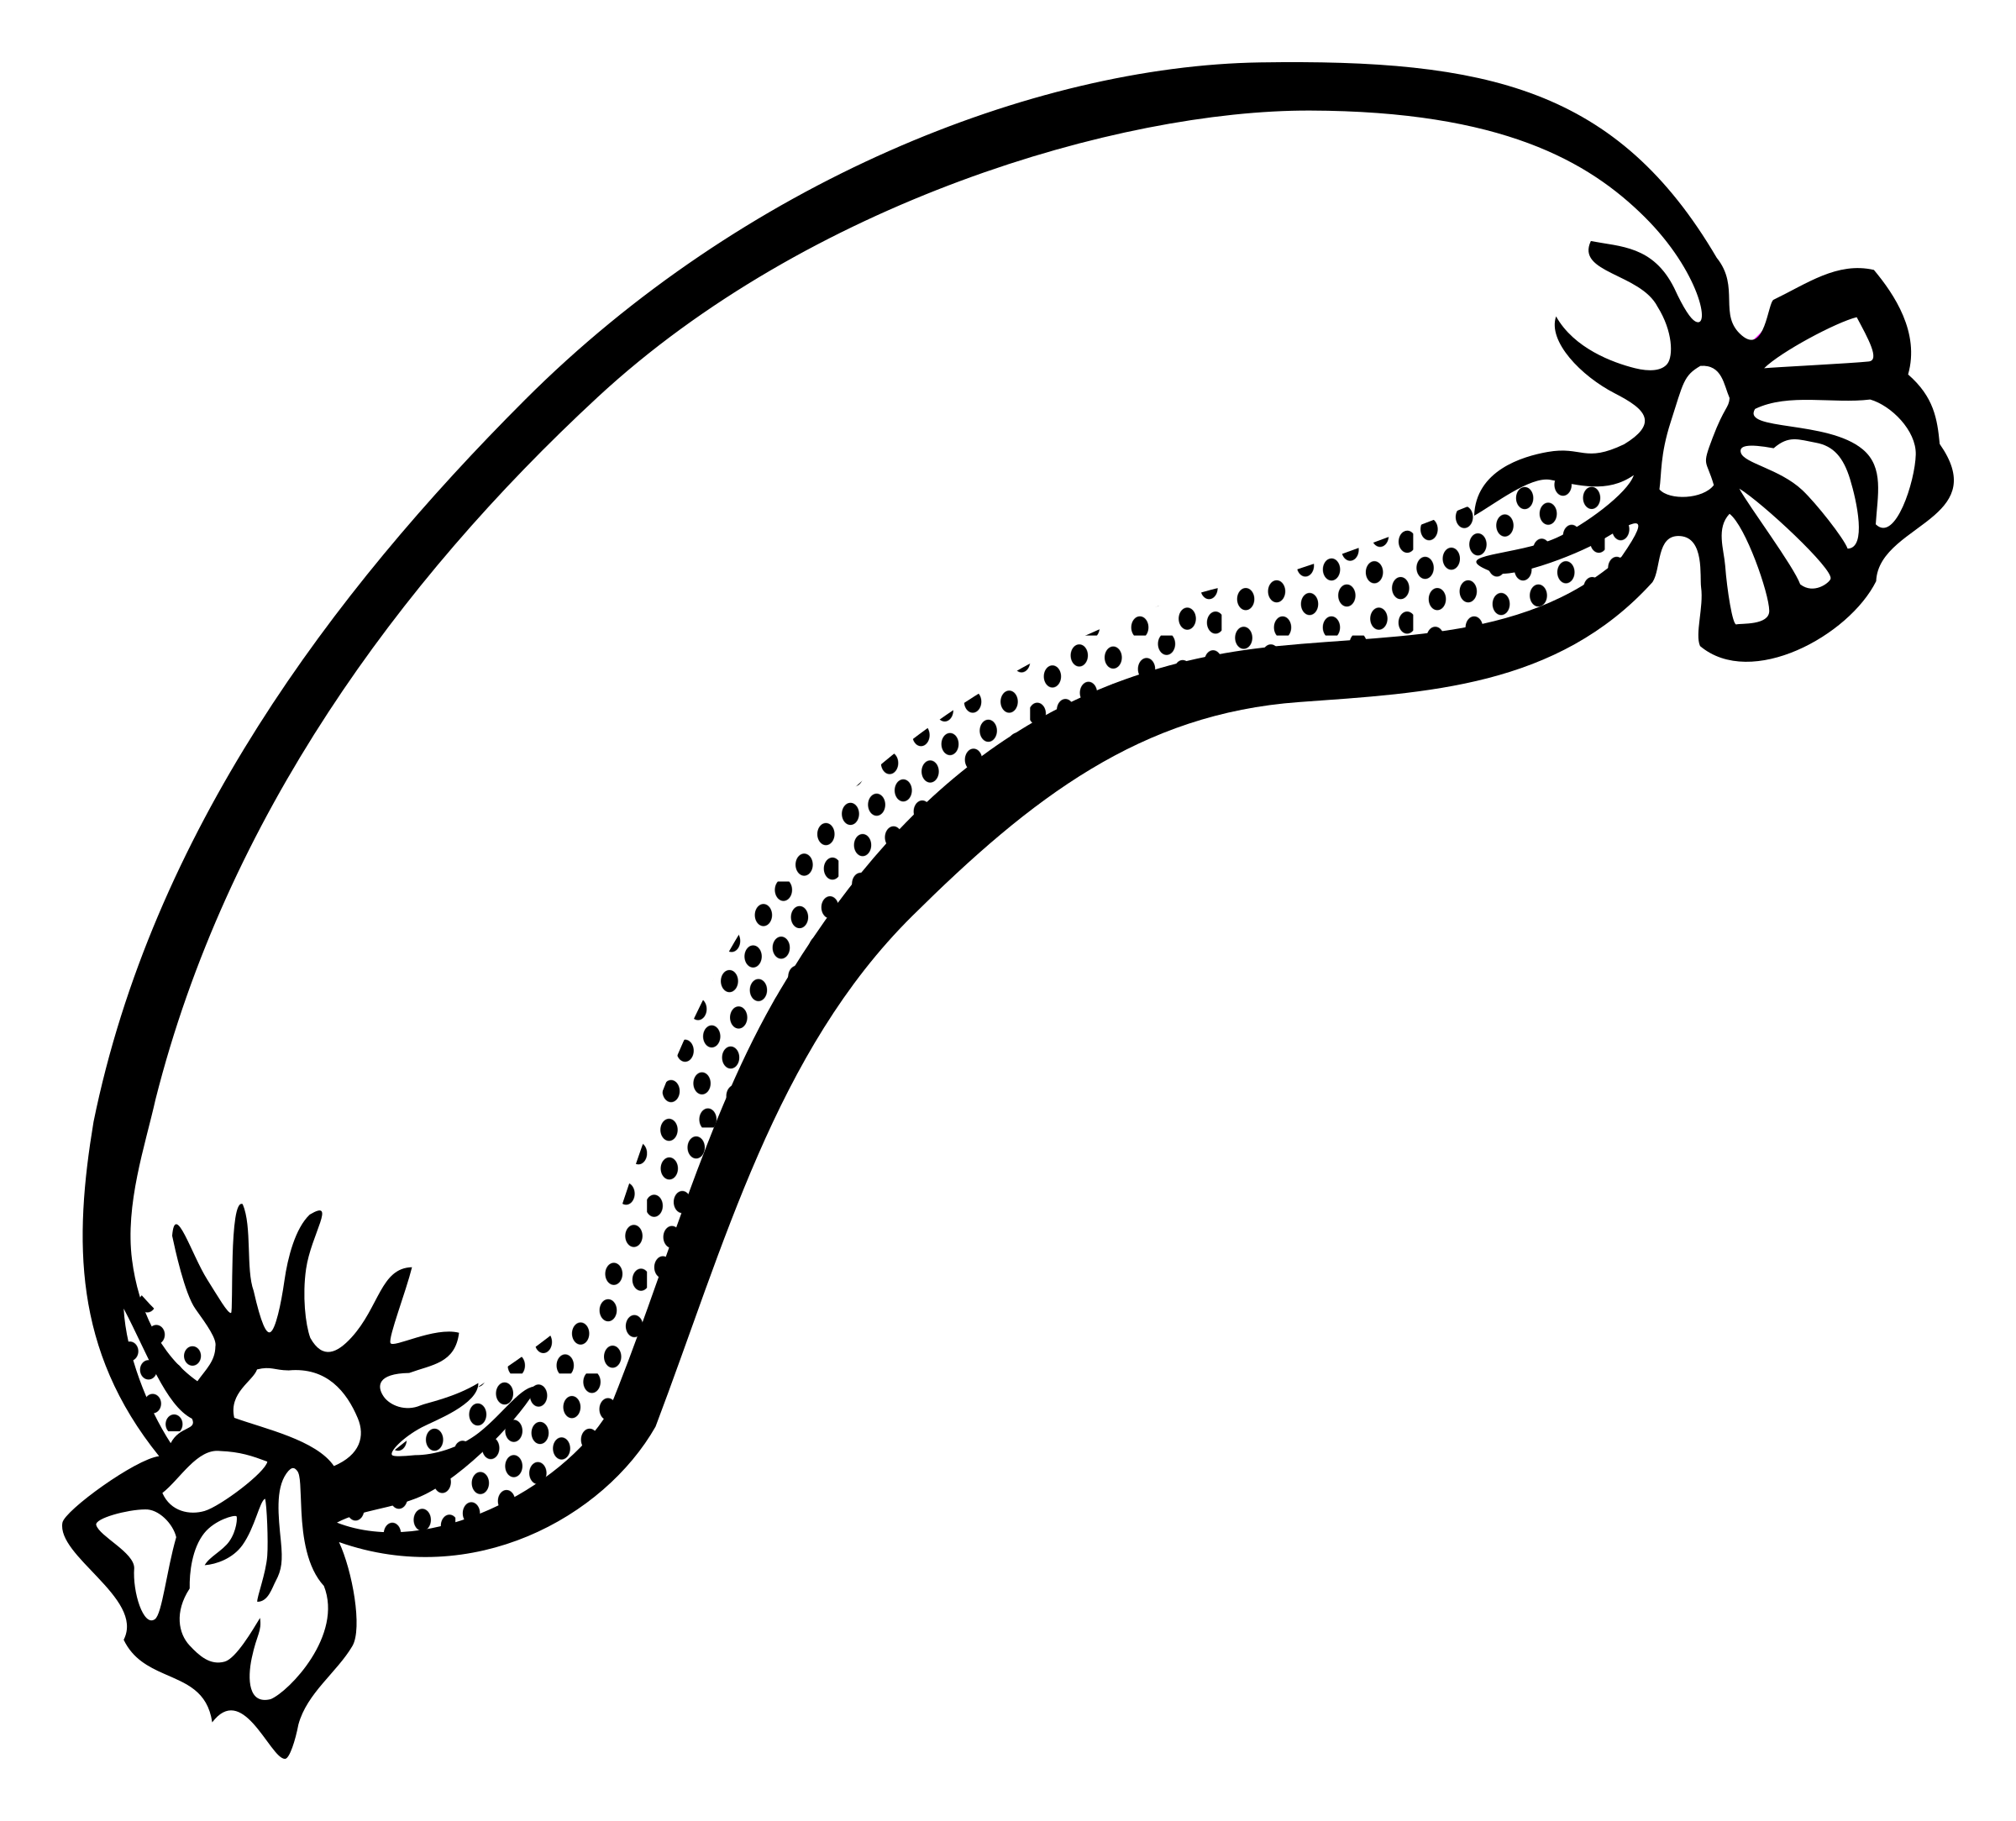 Sausage clipart black and white.